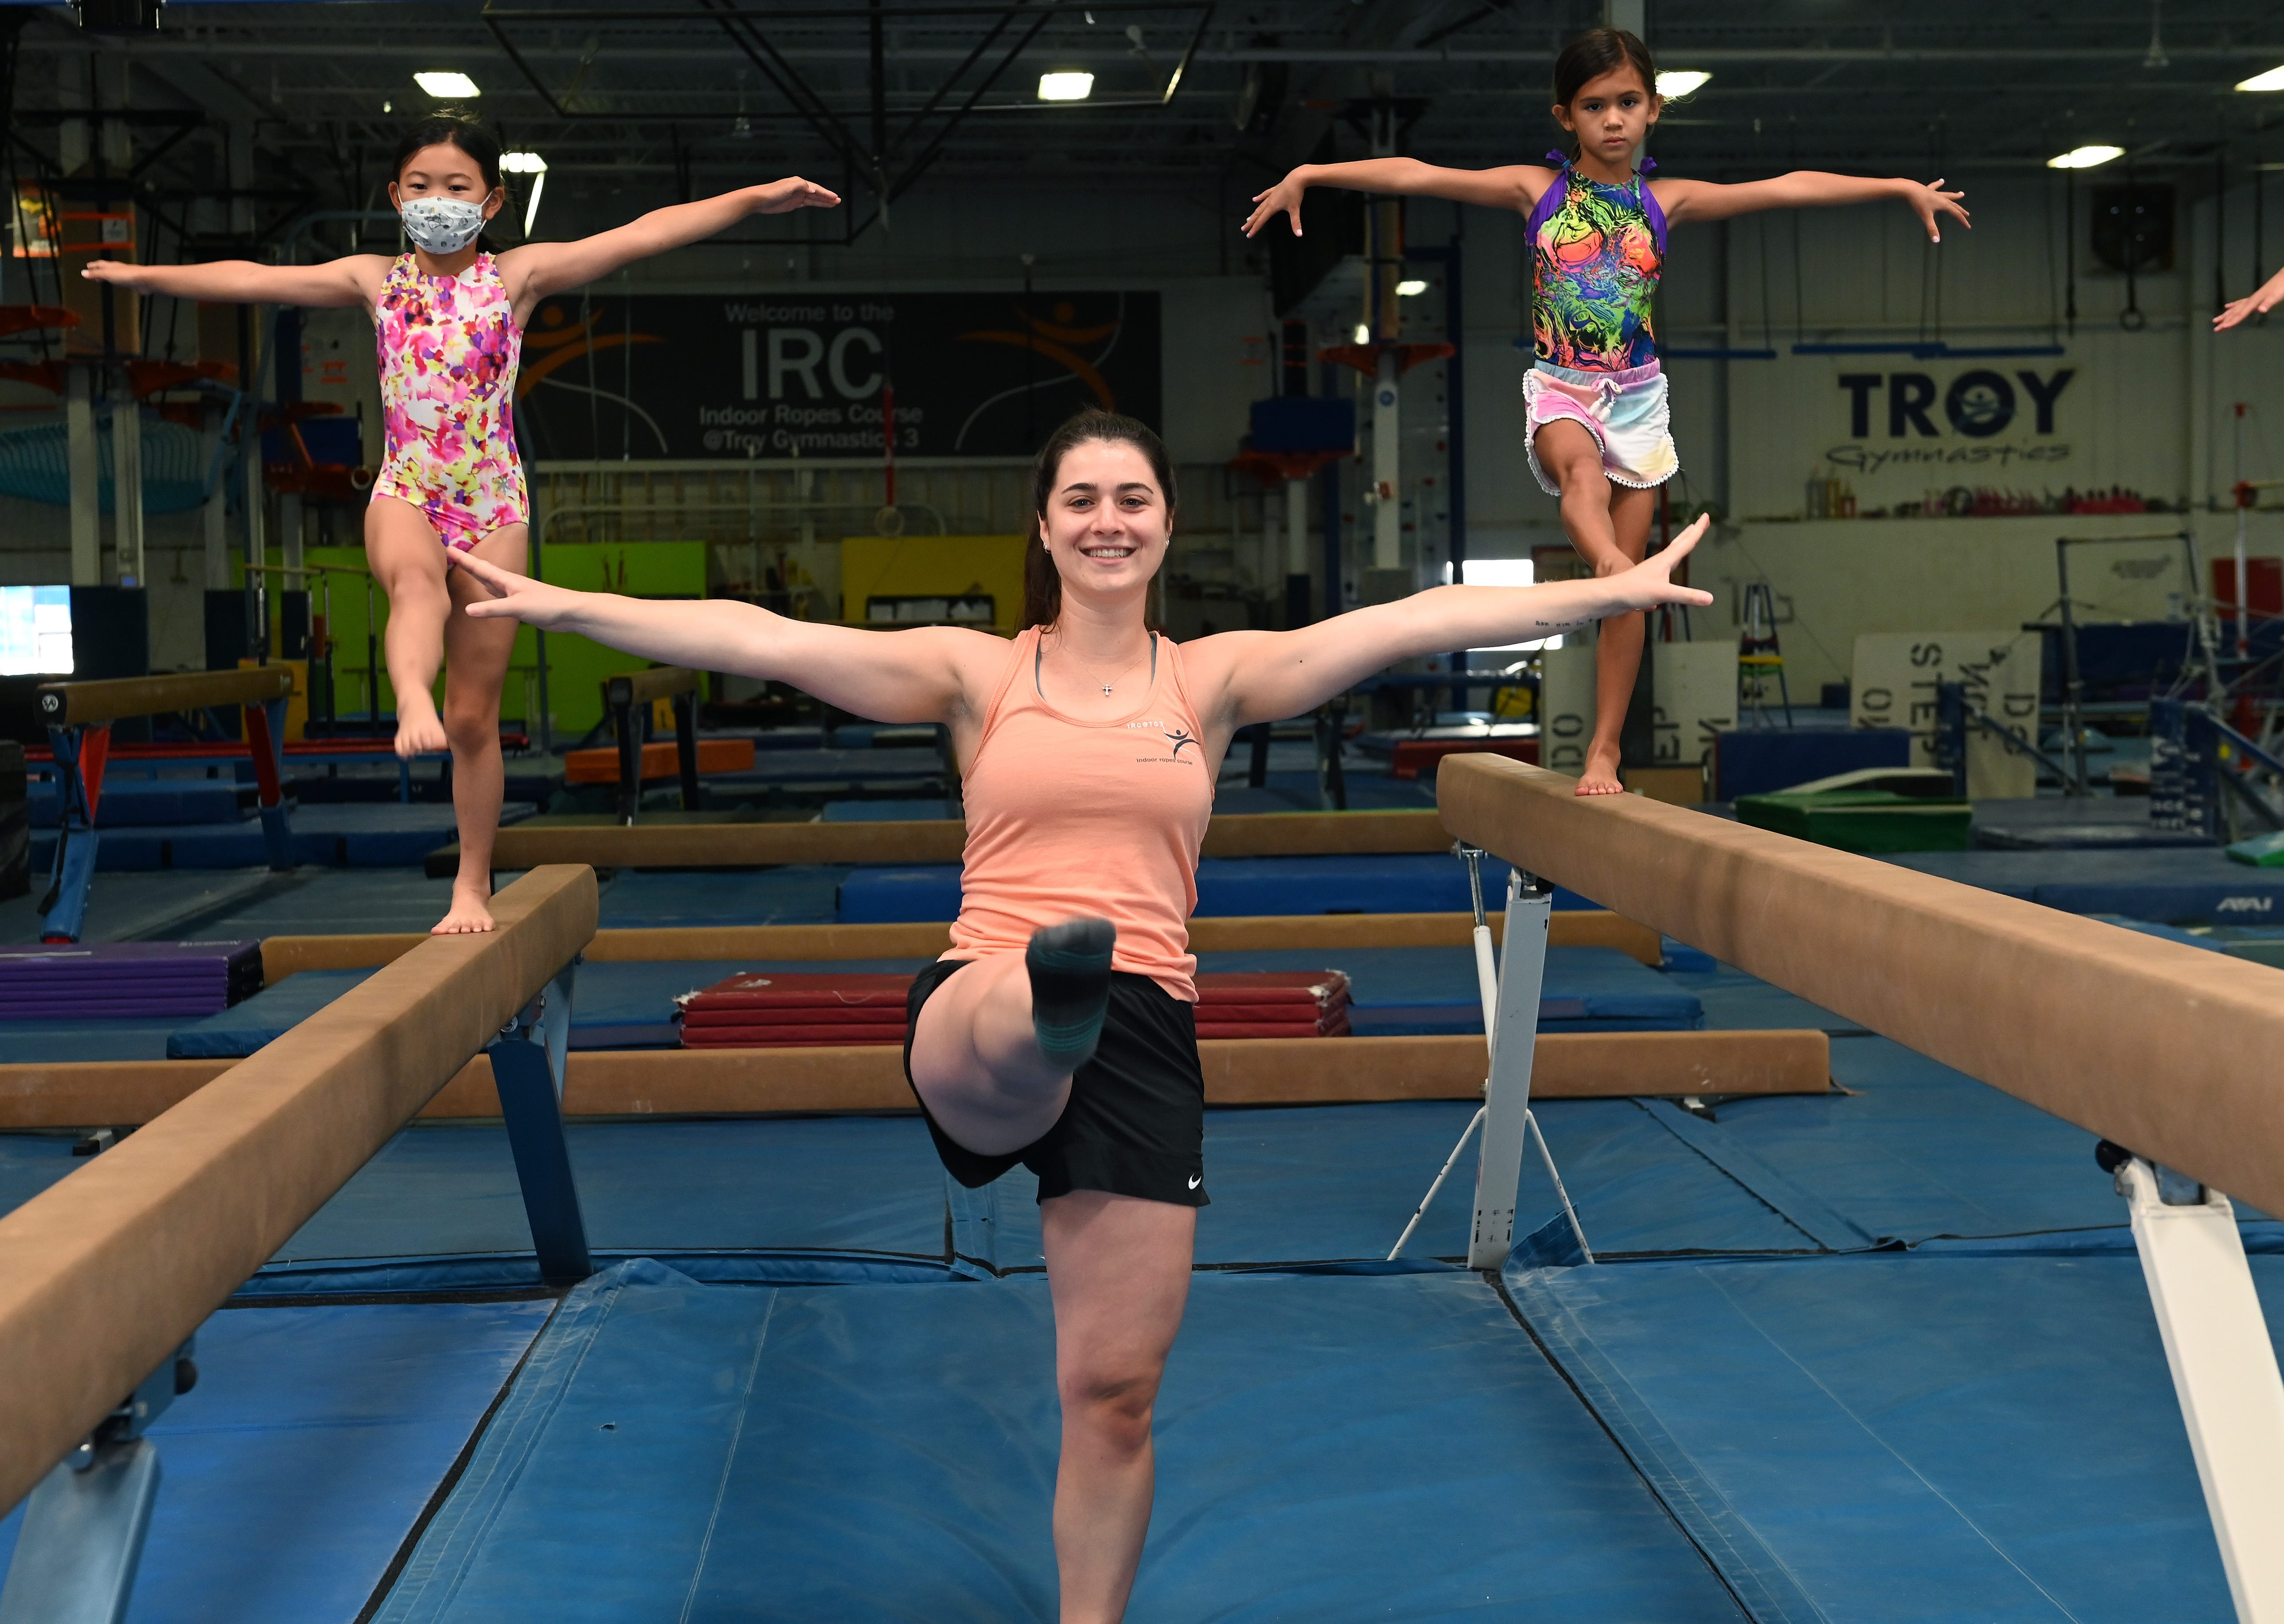 After shutdowns and scandal, Olympics symbolize new chapter for Michigan gymnastics